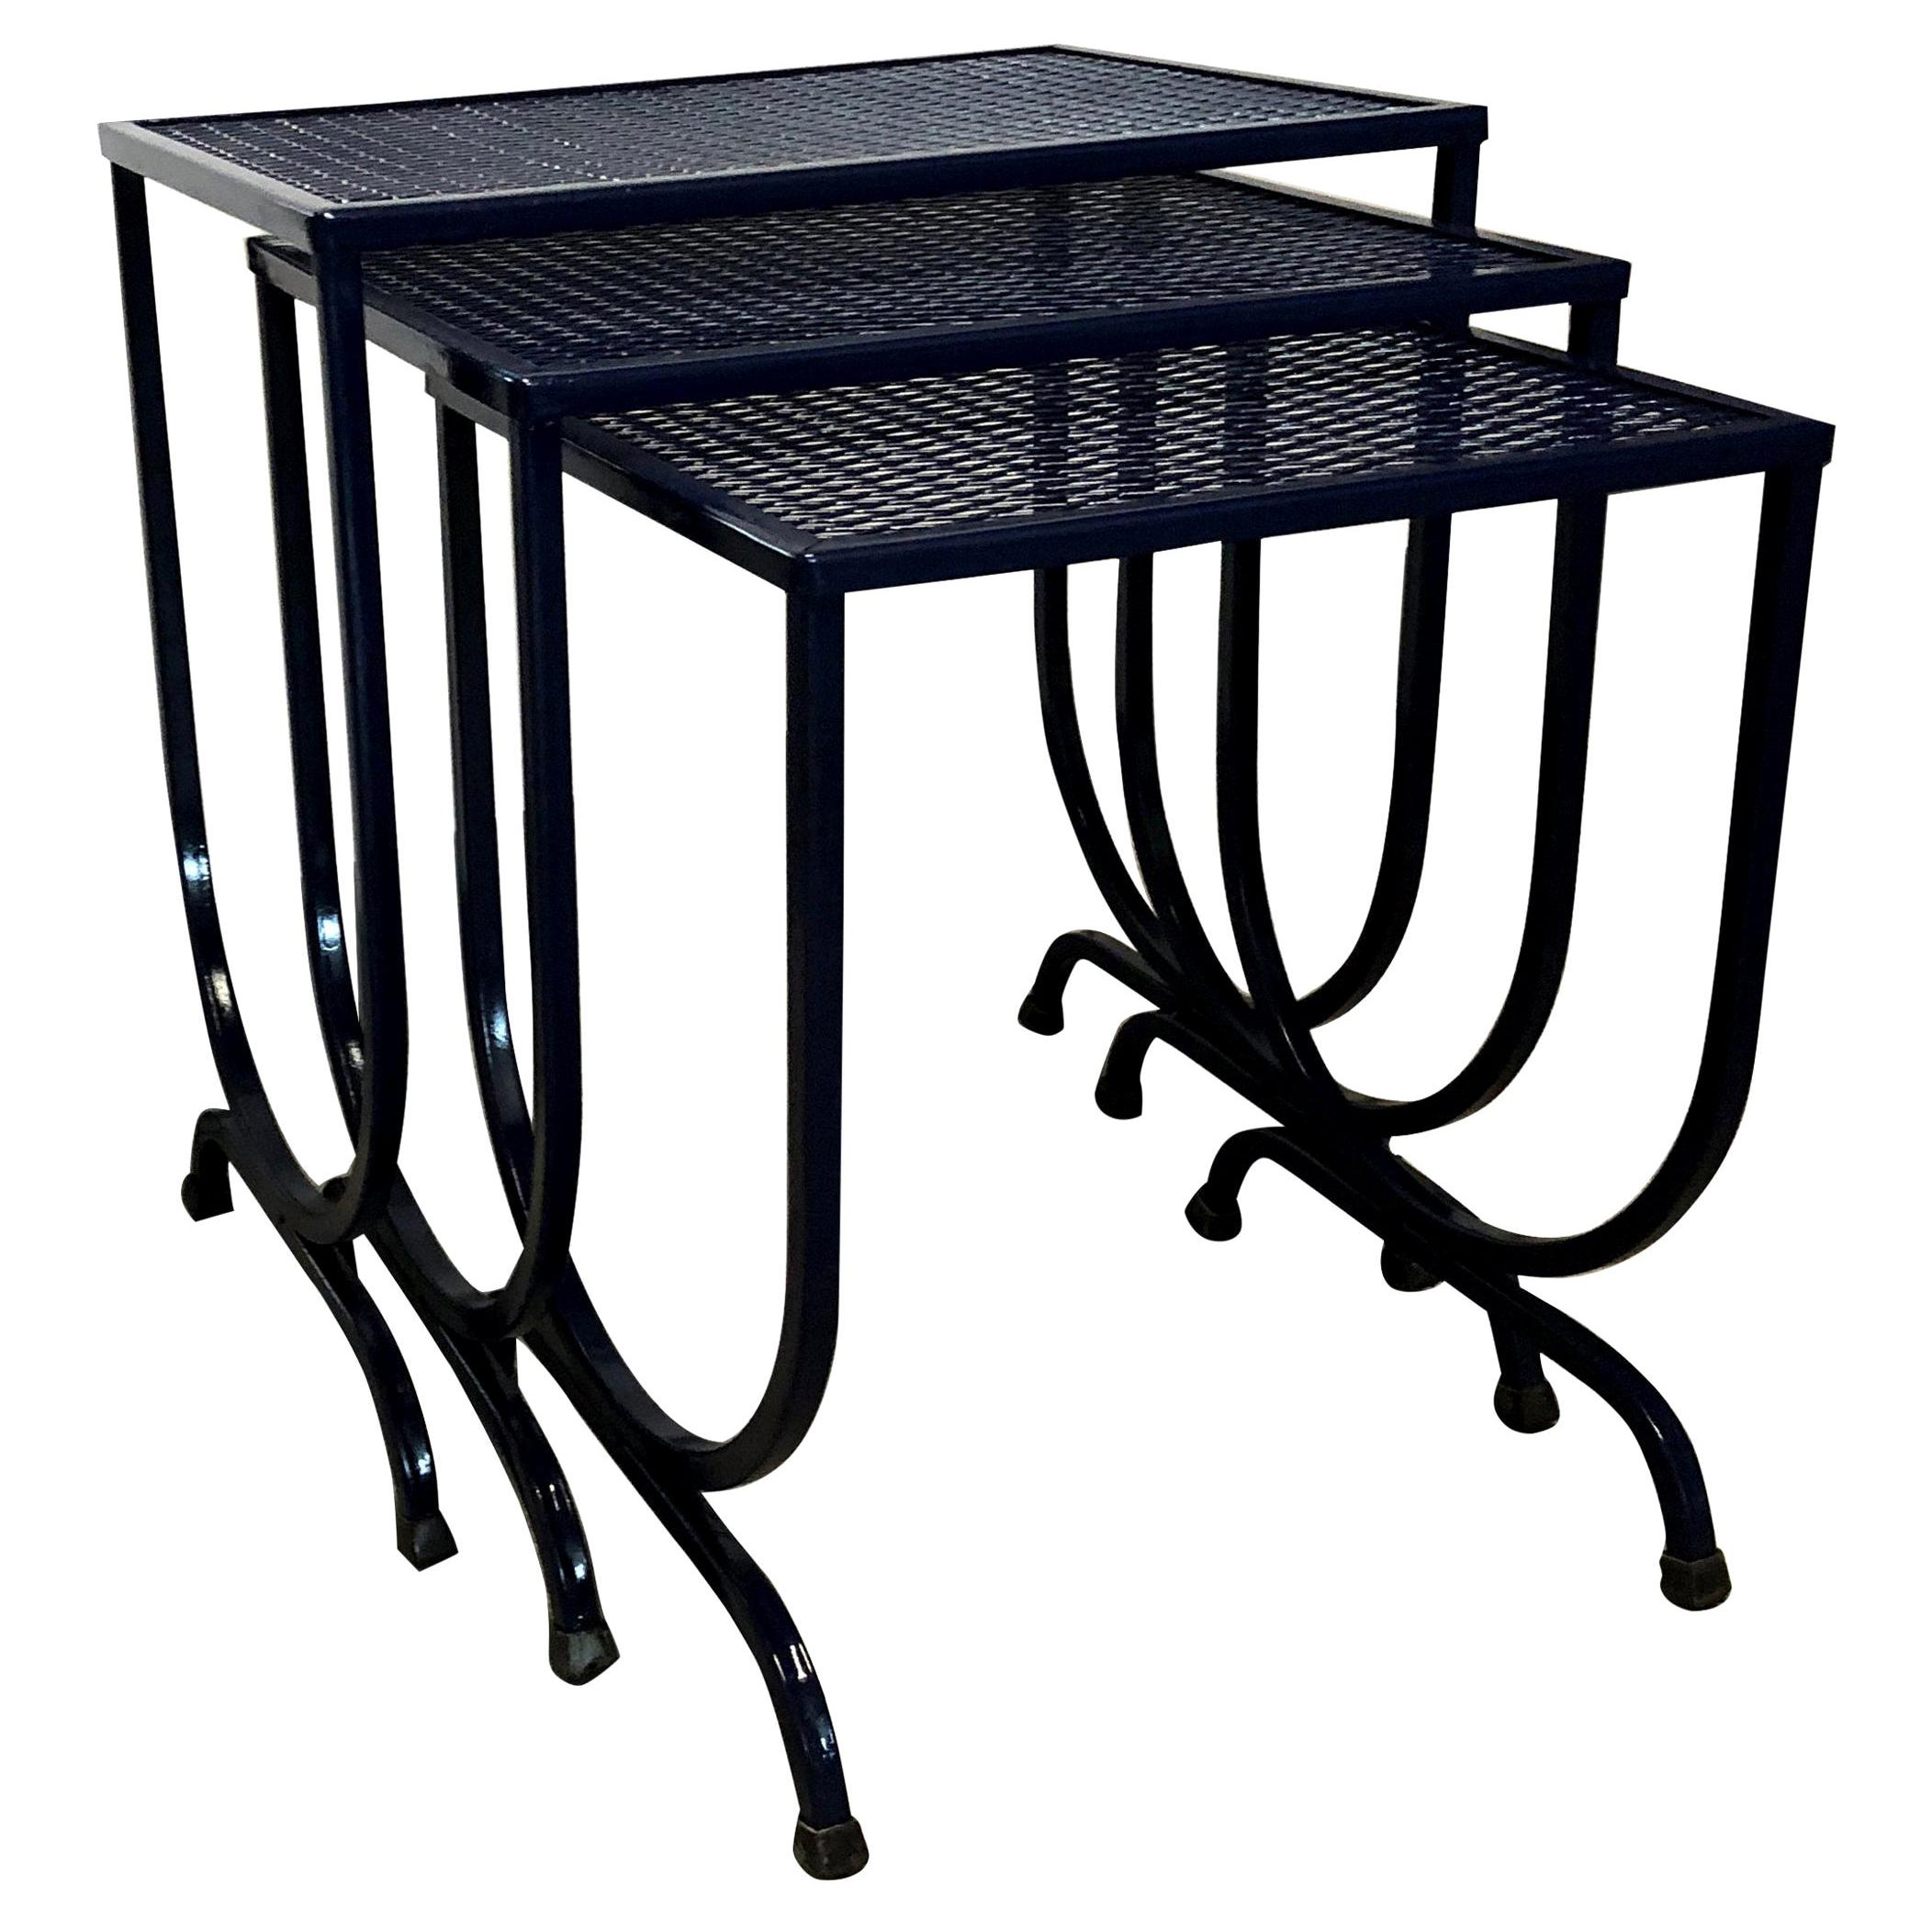 S/3 Salterini Newly Enameled Blue Wrought Iron Patio Stacking / Nesting Tables